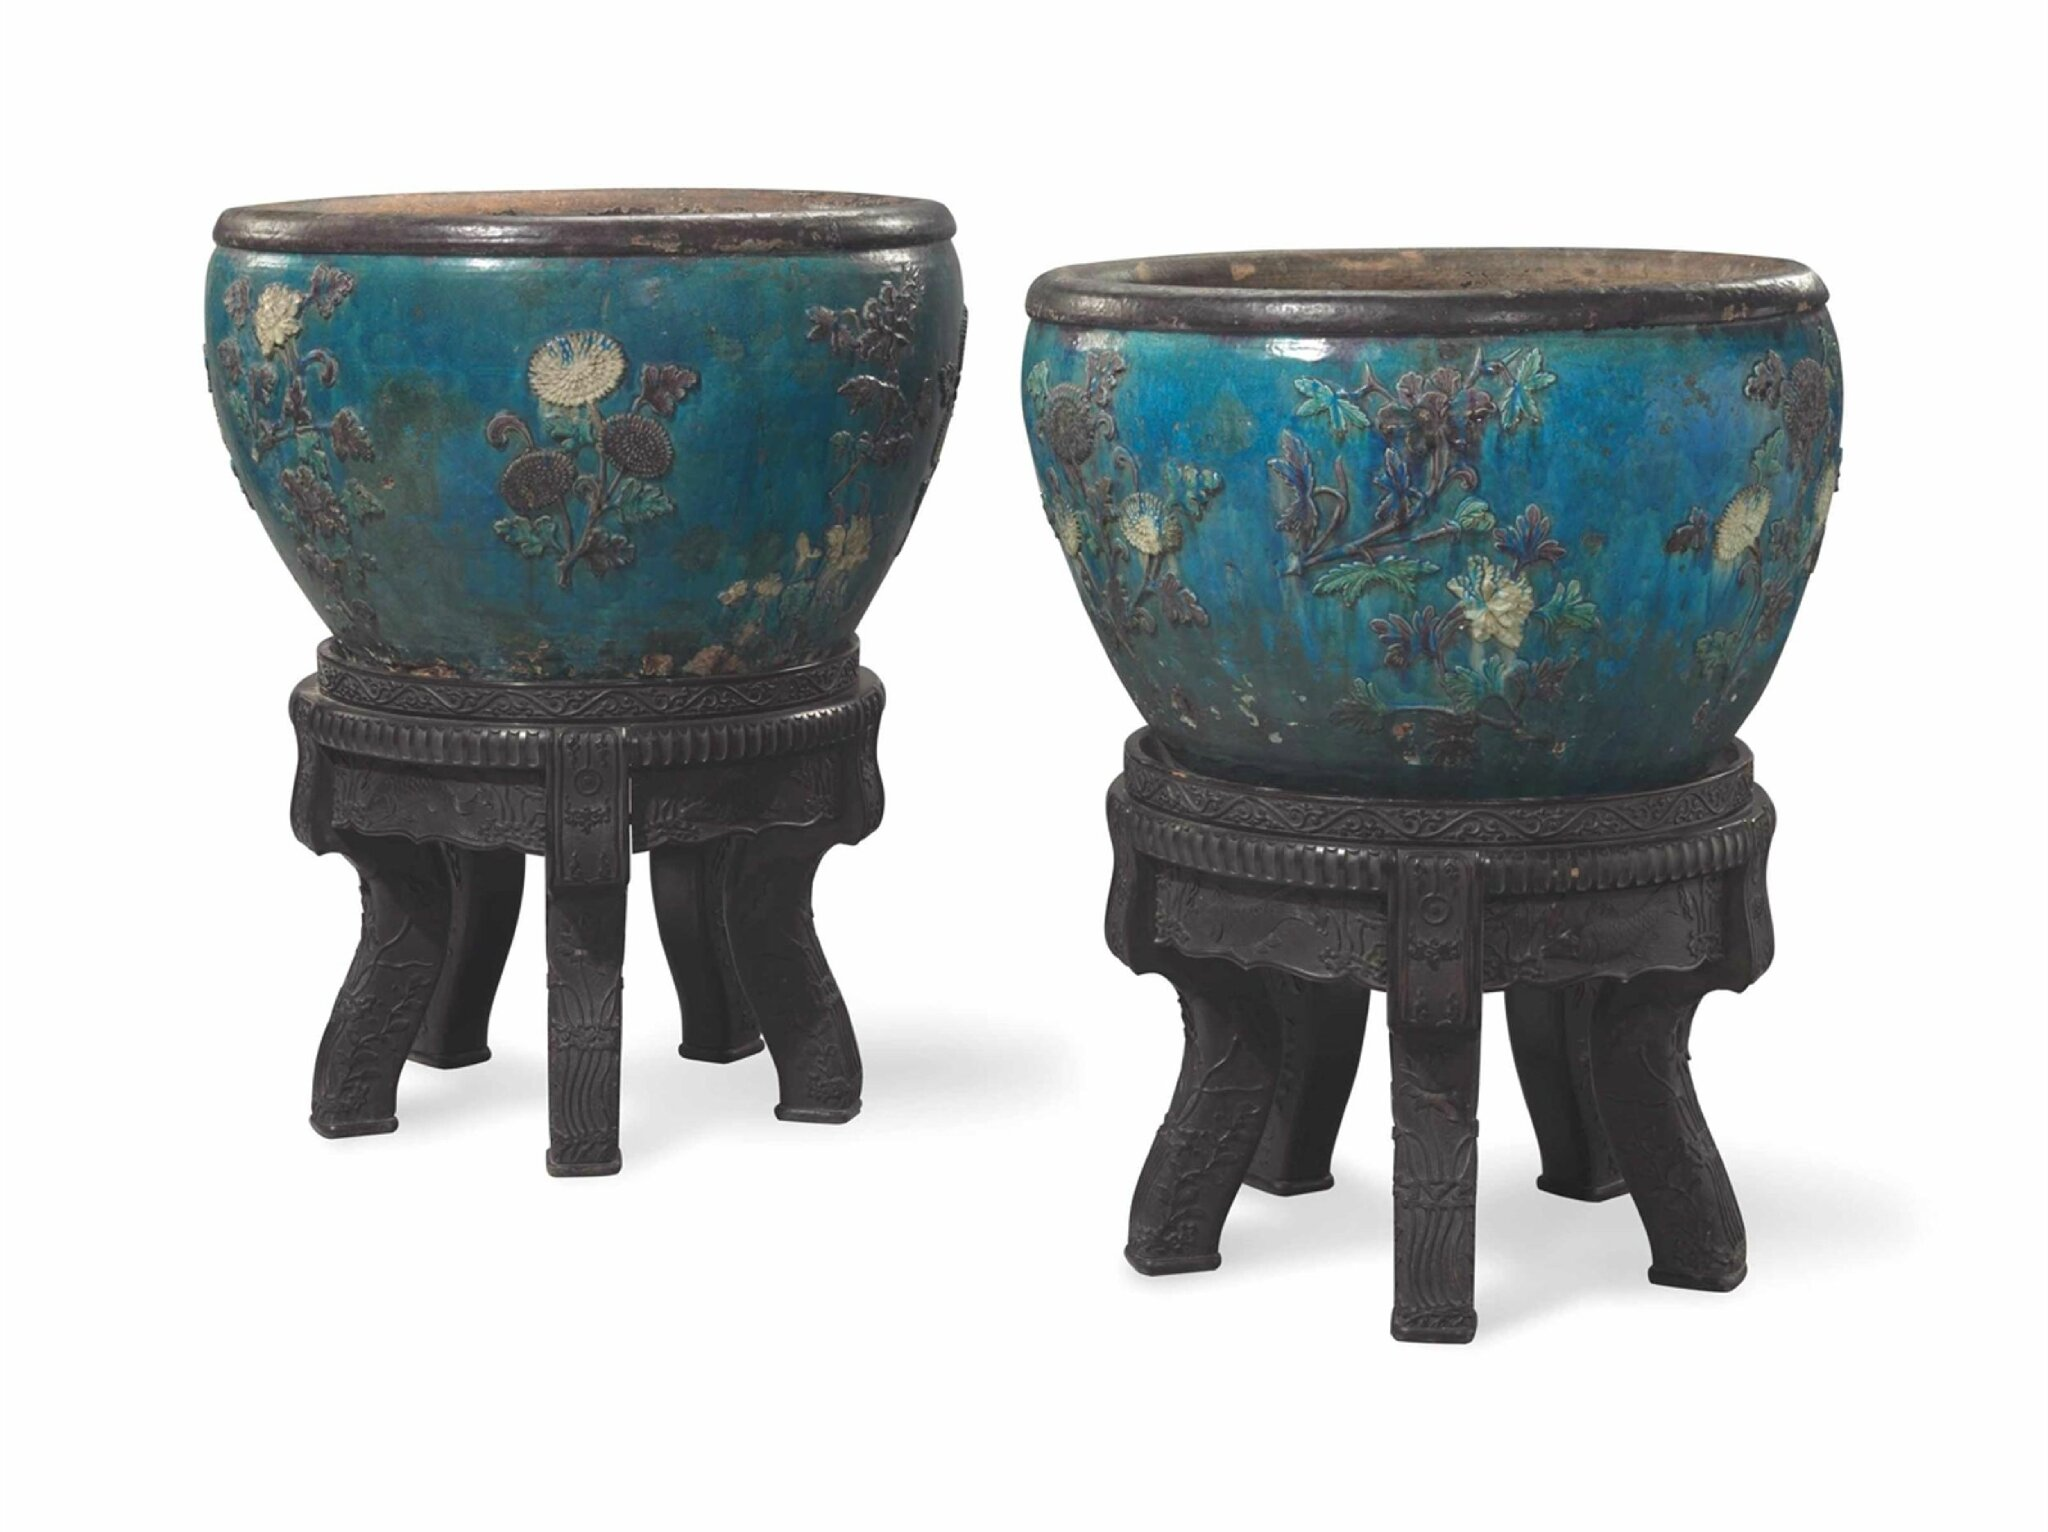 A pair of massive fahua jardinières, Ming dynasty, 15th-16th century